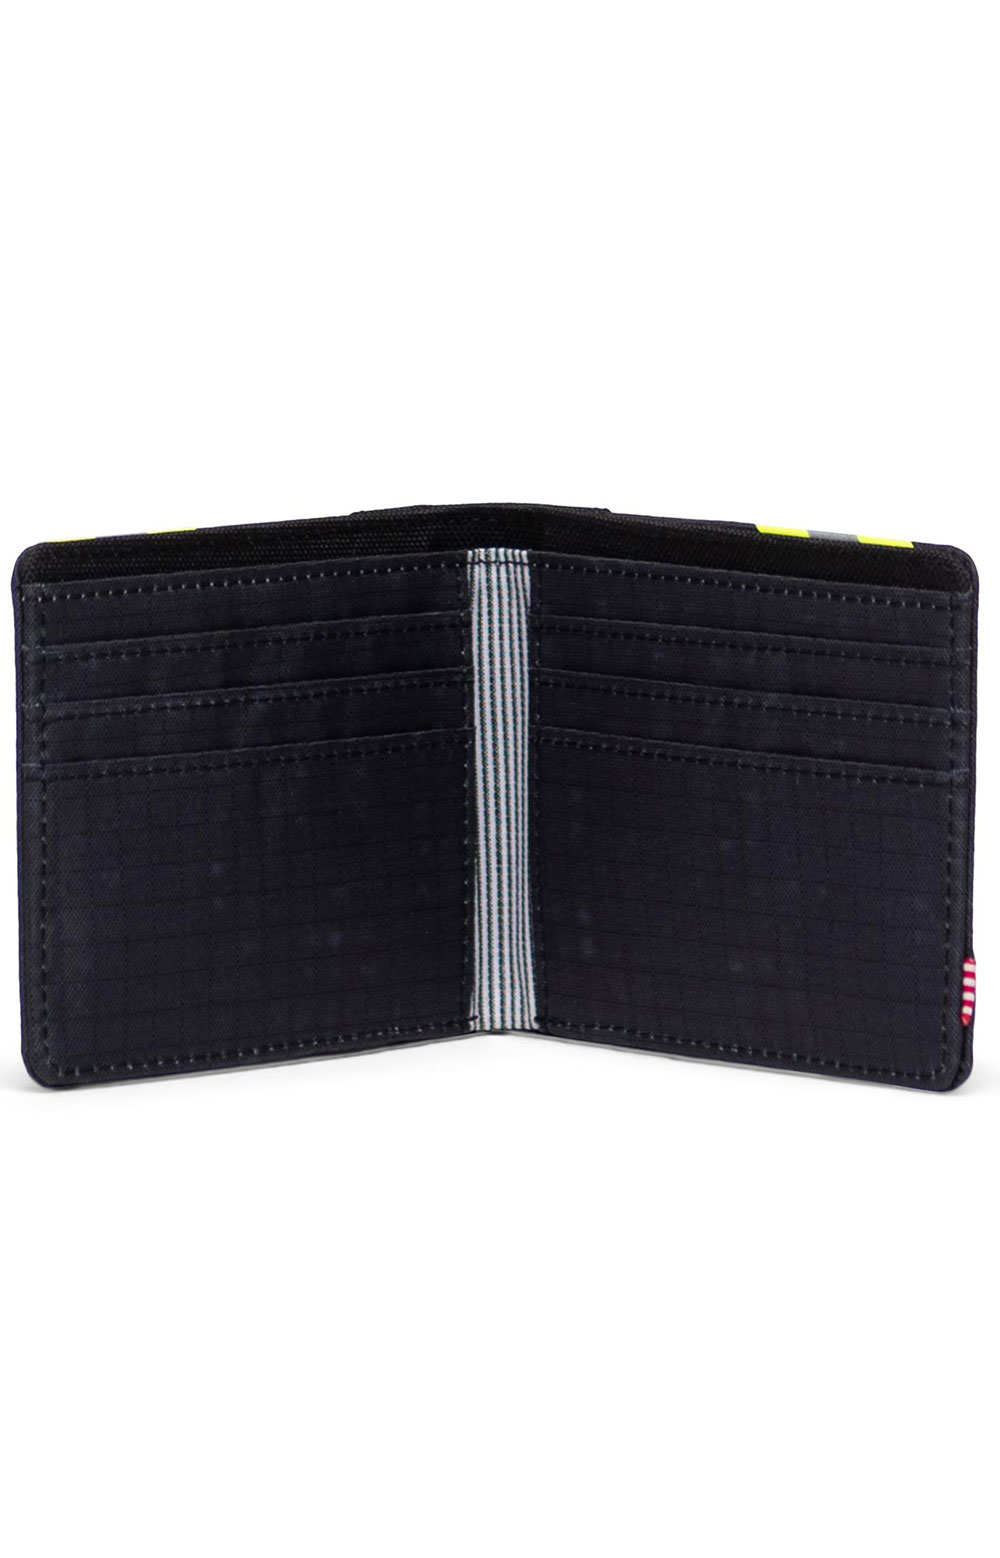 Roy Wallet - Black Enzyme Ripstop/Black/Safety Yellow 4